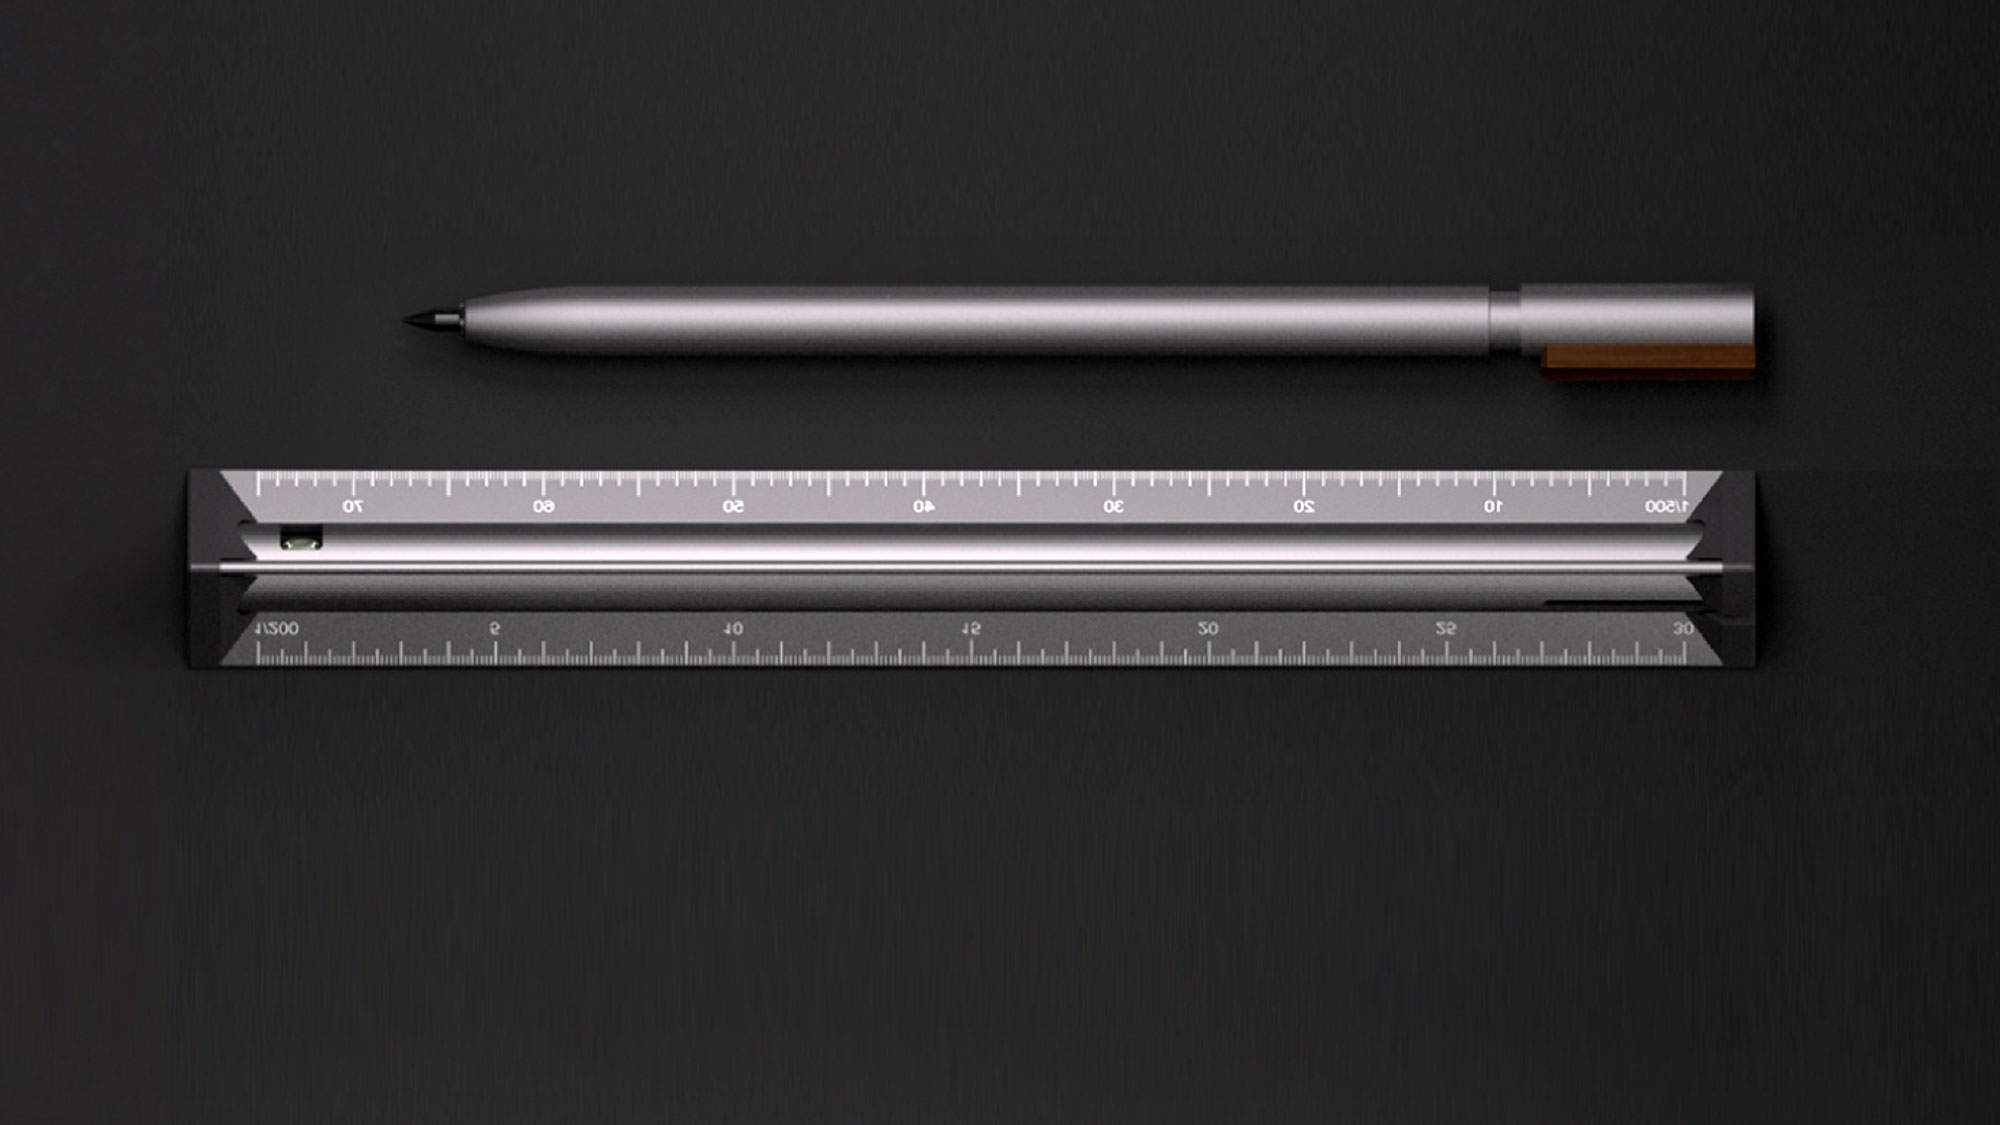 TA+d One 3 Ruler with Integrated Pe